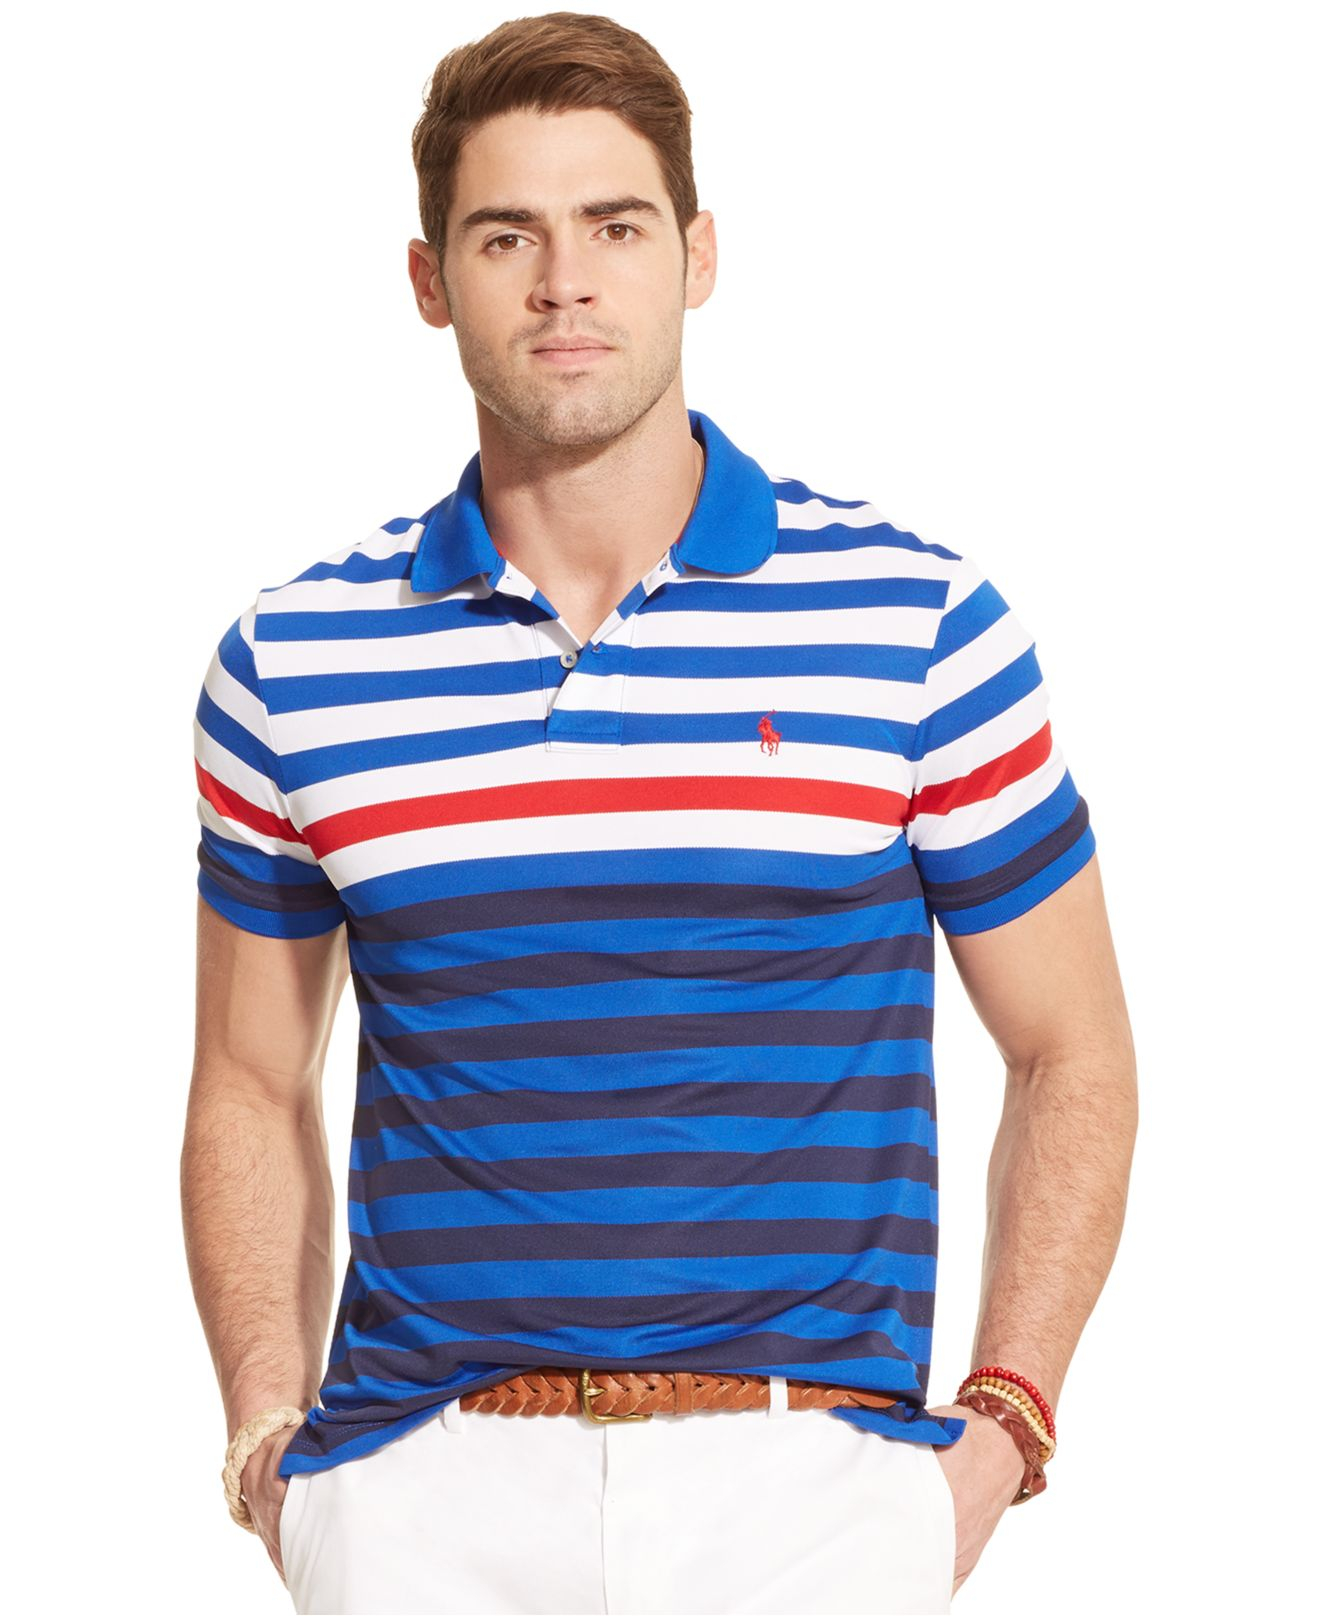 Polo ralph lauren multi striped performance mesh polo Man in polo shirt